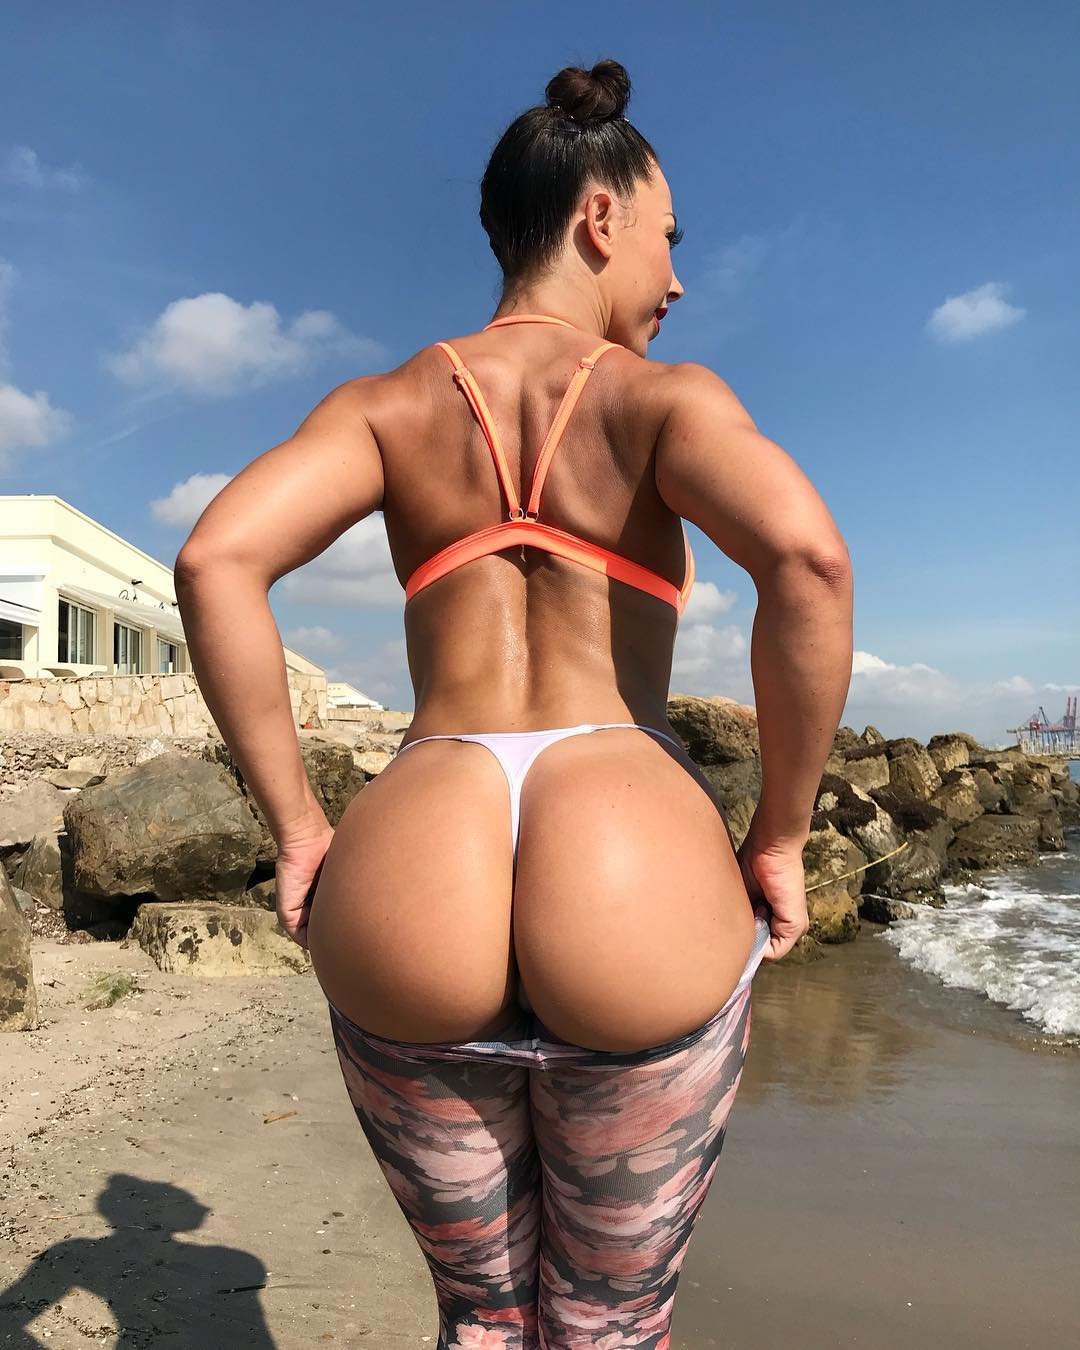 Yaela Heart's big ass - Alrincon.com